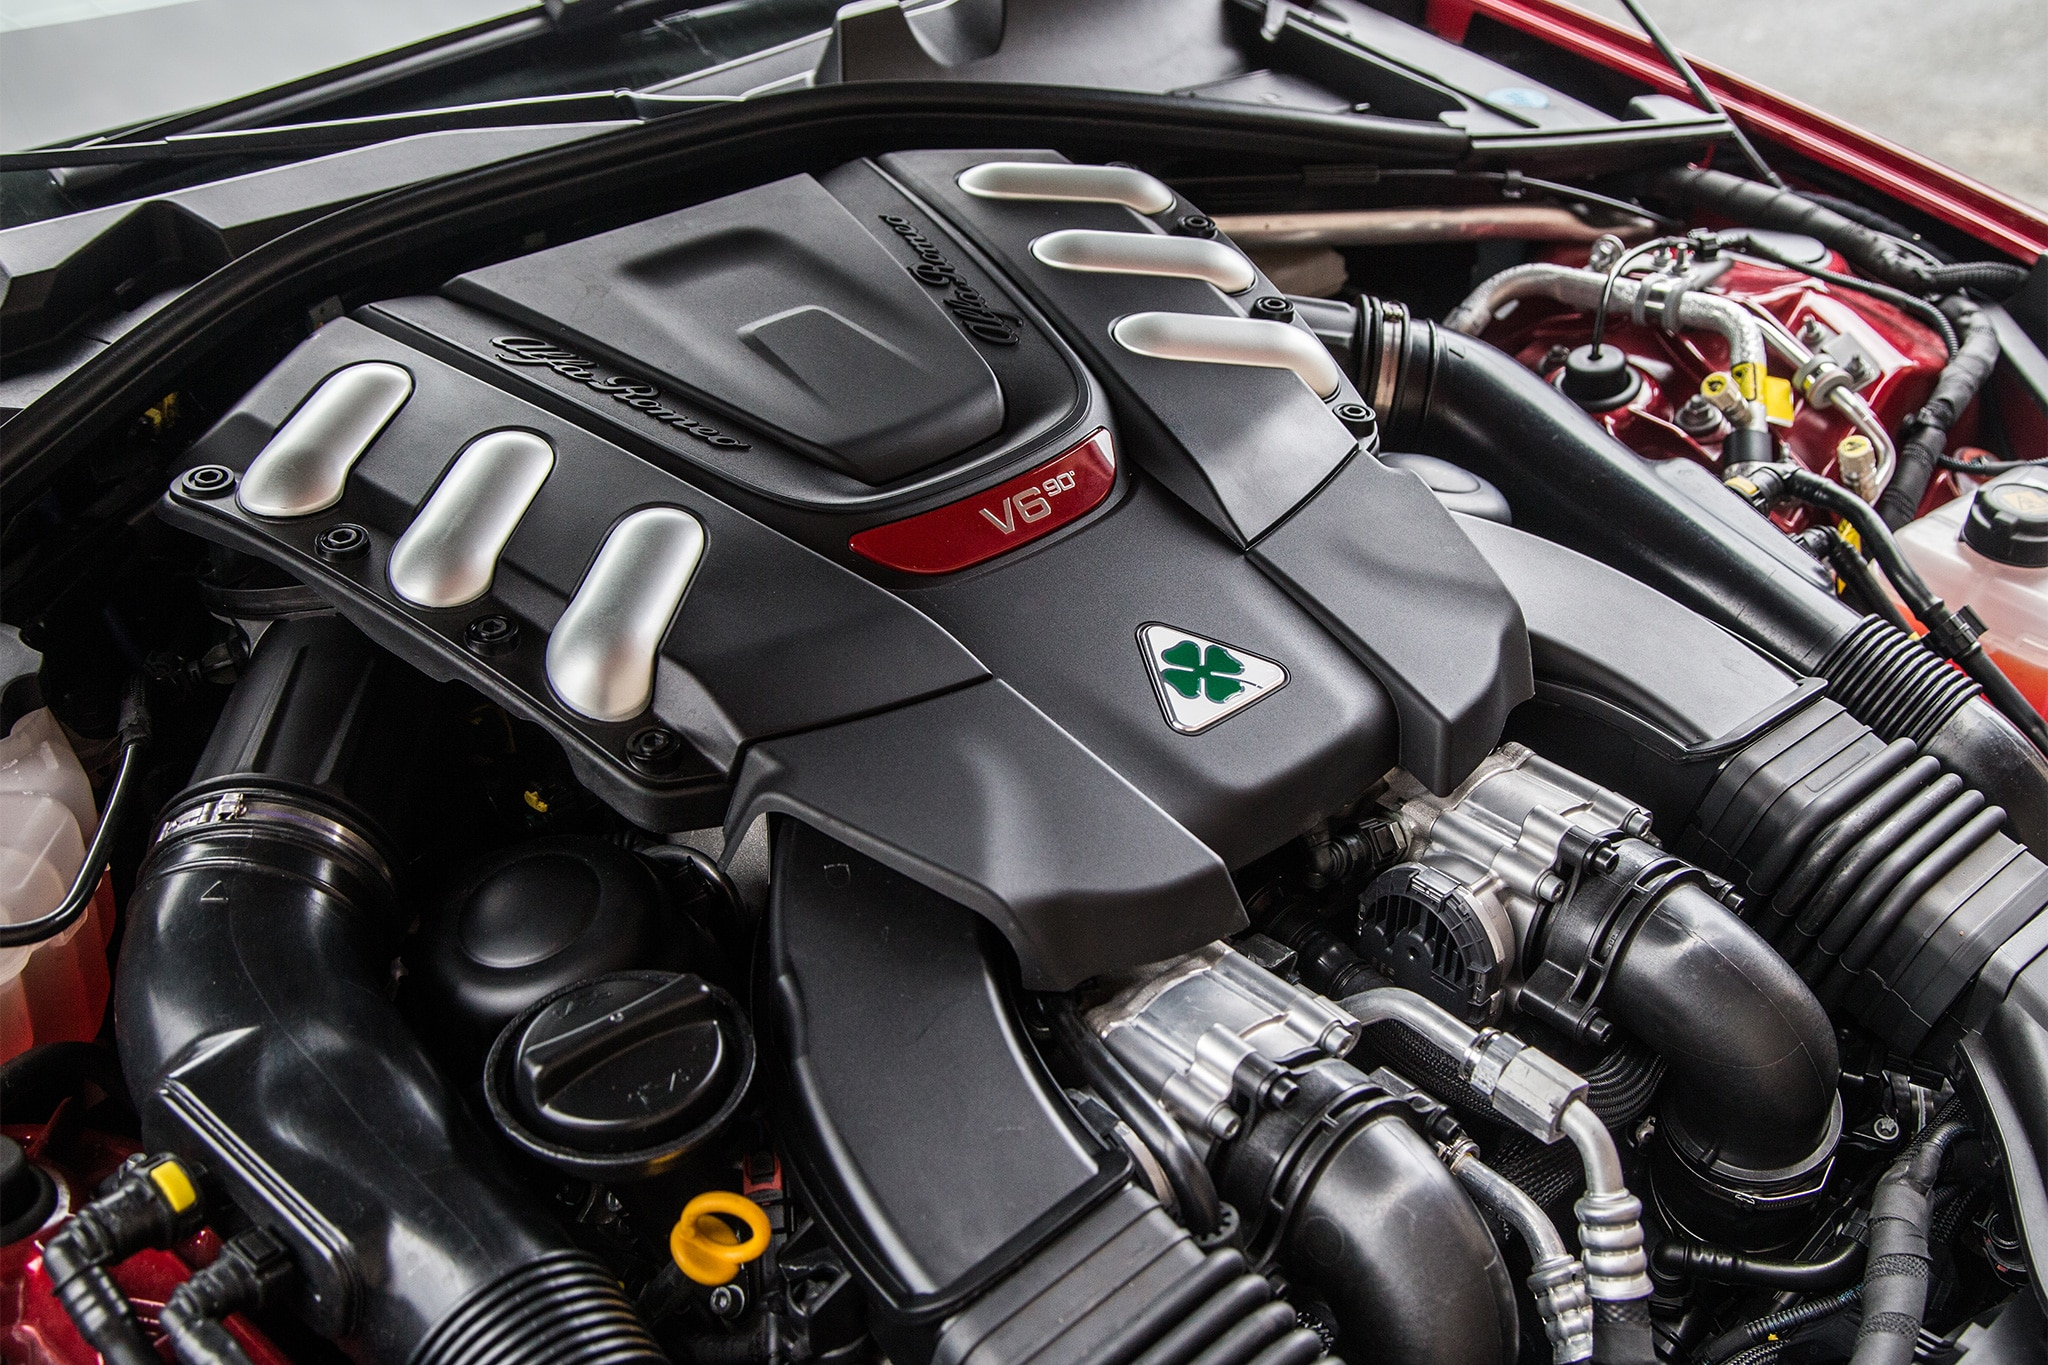 ALFA ROMEO 147 OWNERS MANUAL Pdf Download